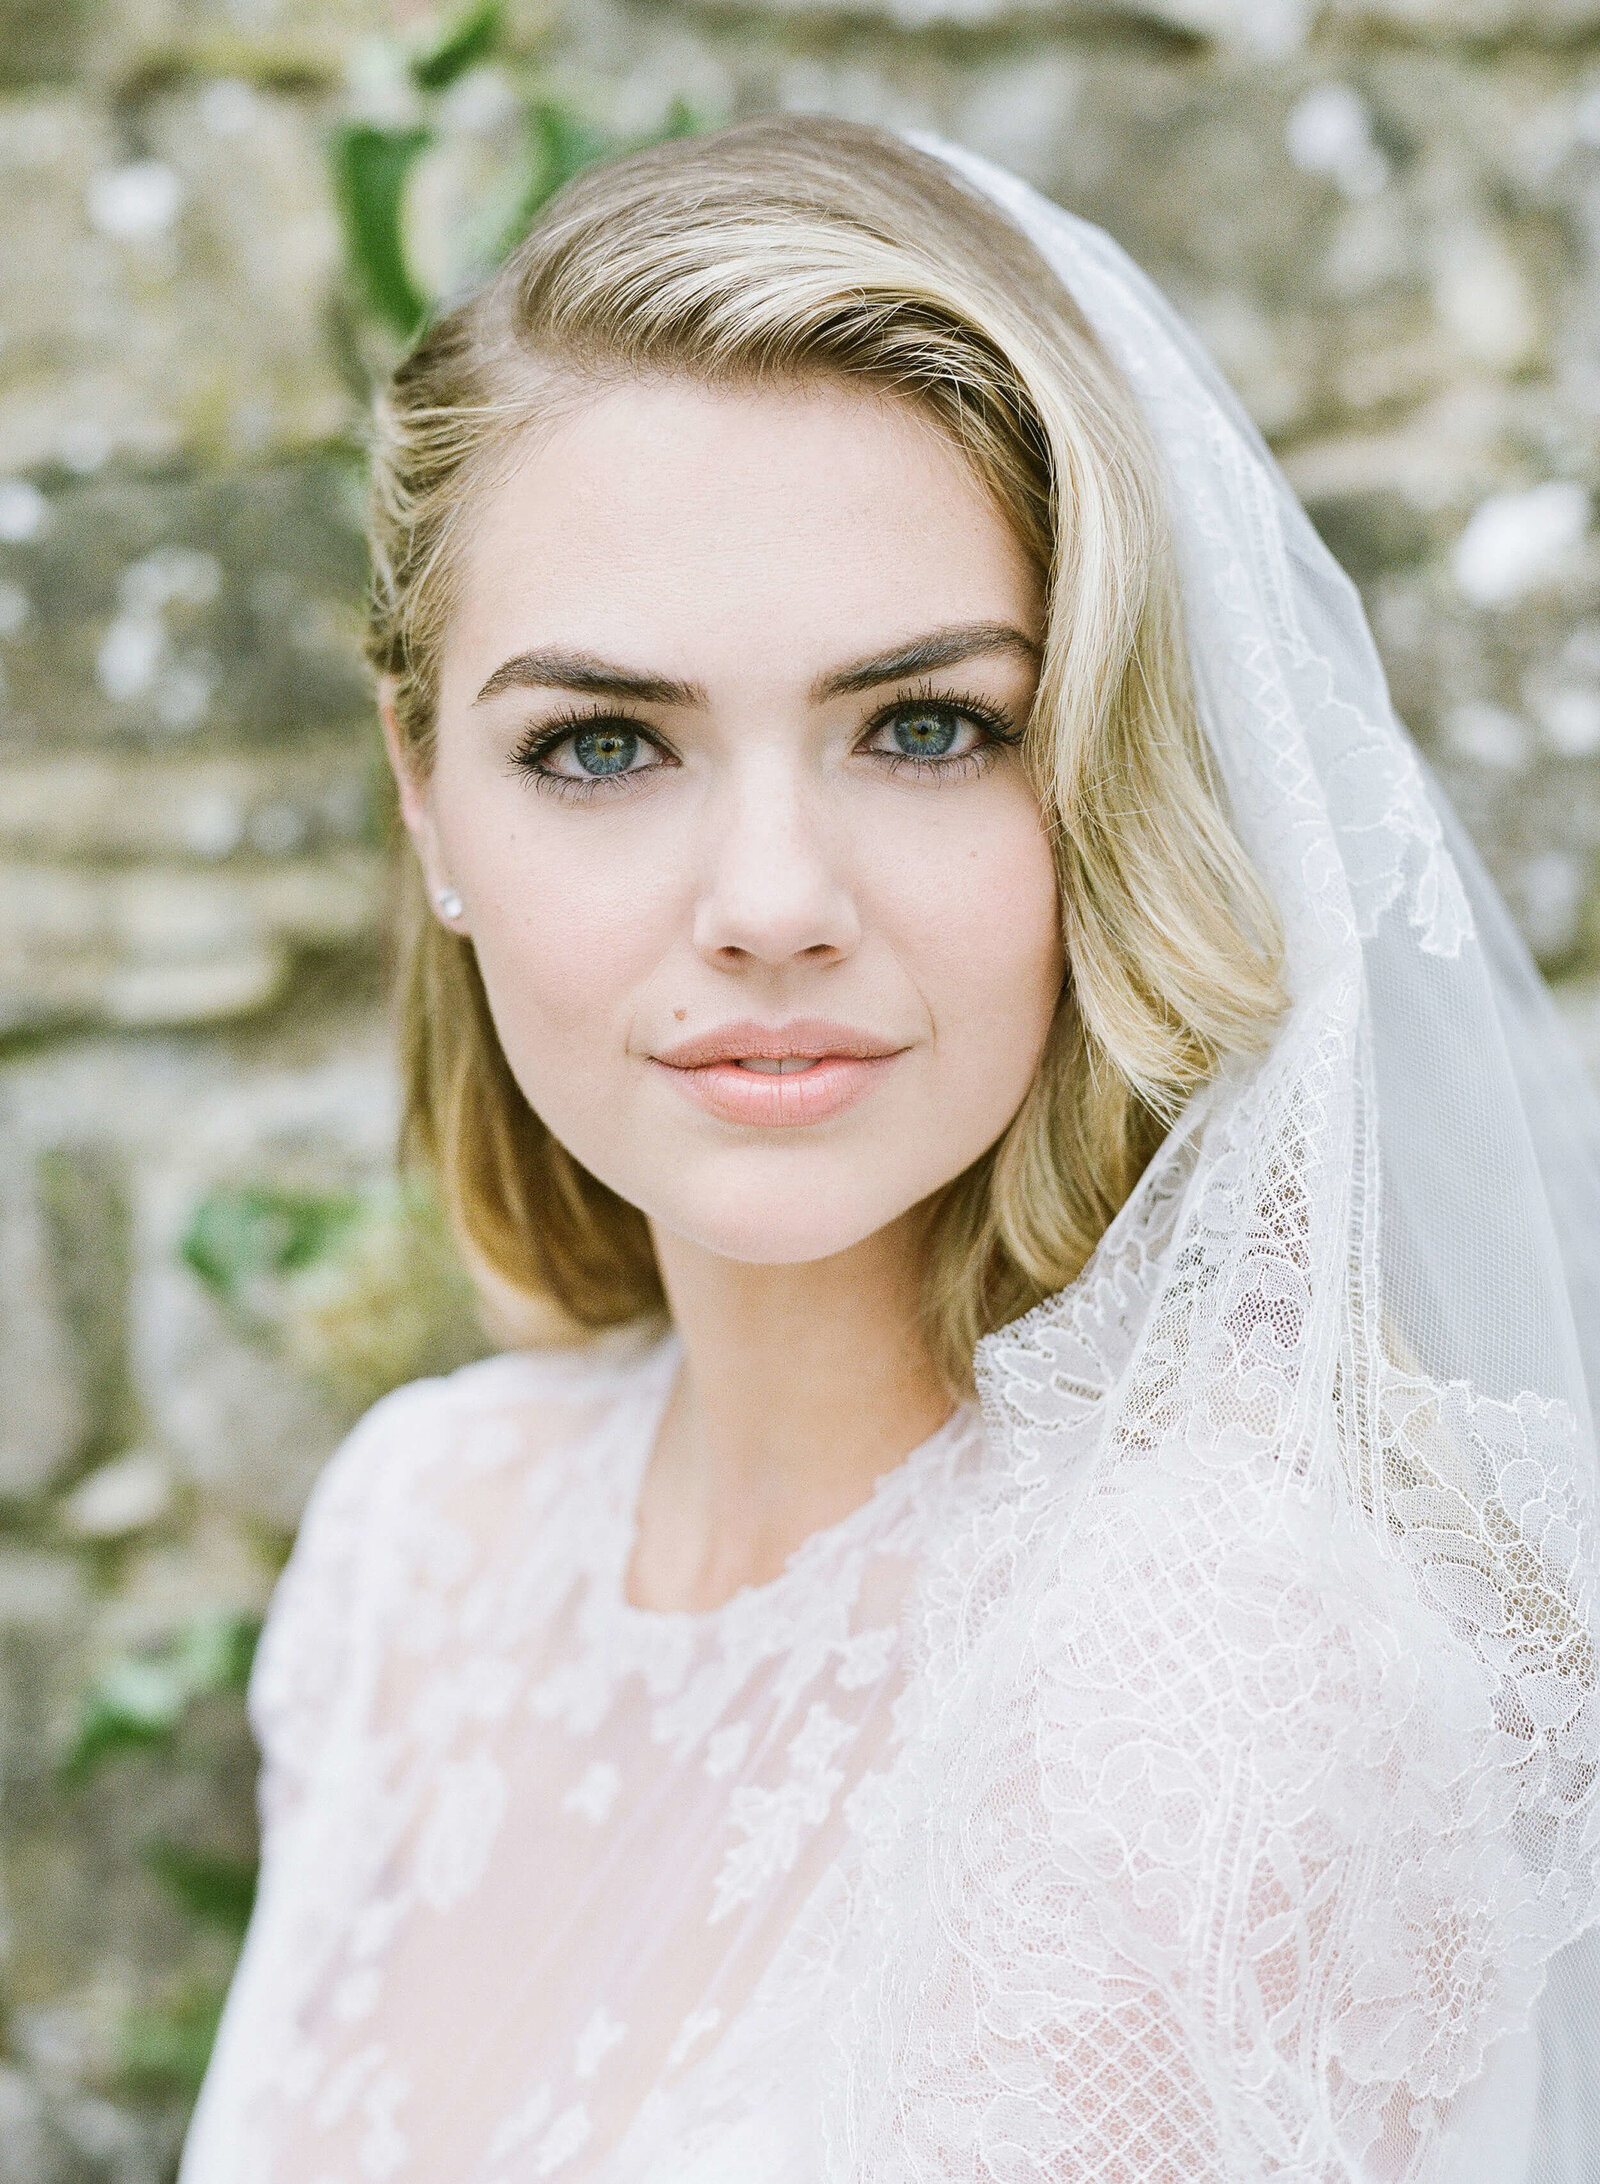 6-KTMerry-weddings-Kate-Upton-bridal-portrait